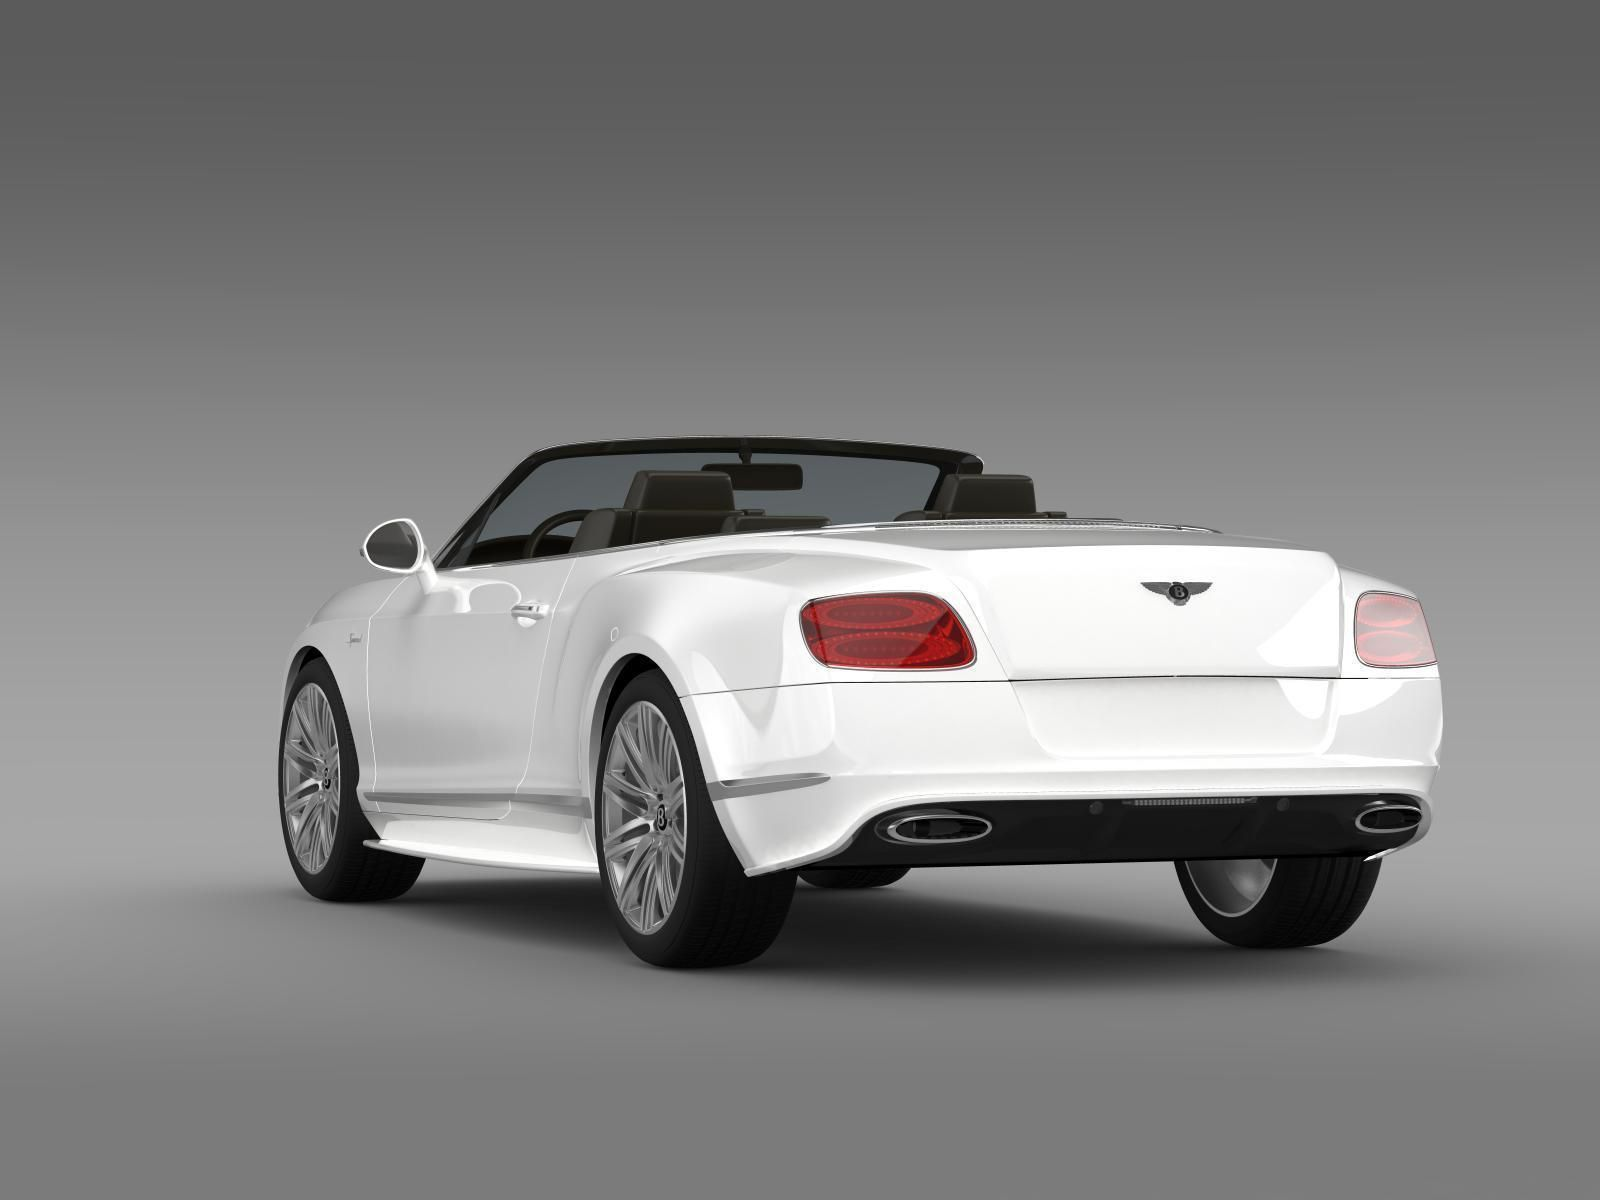 bentley continental gt speed convertible 2014 3d model max obj 3ds. Cars Review. Best American Auto & Cars Review